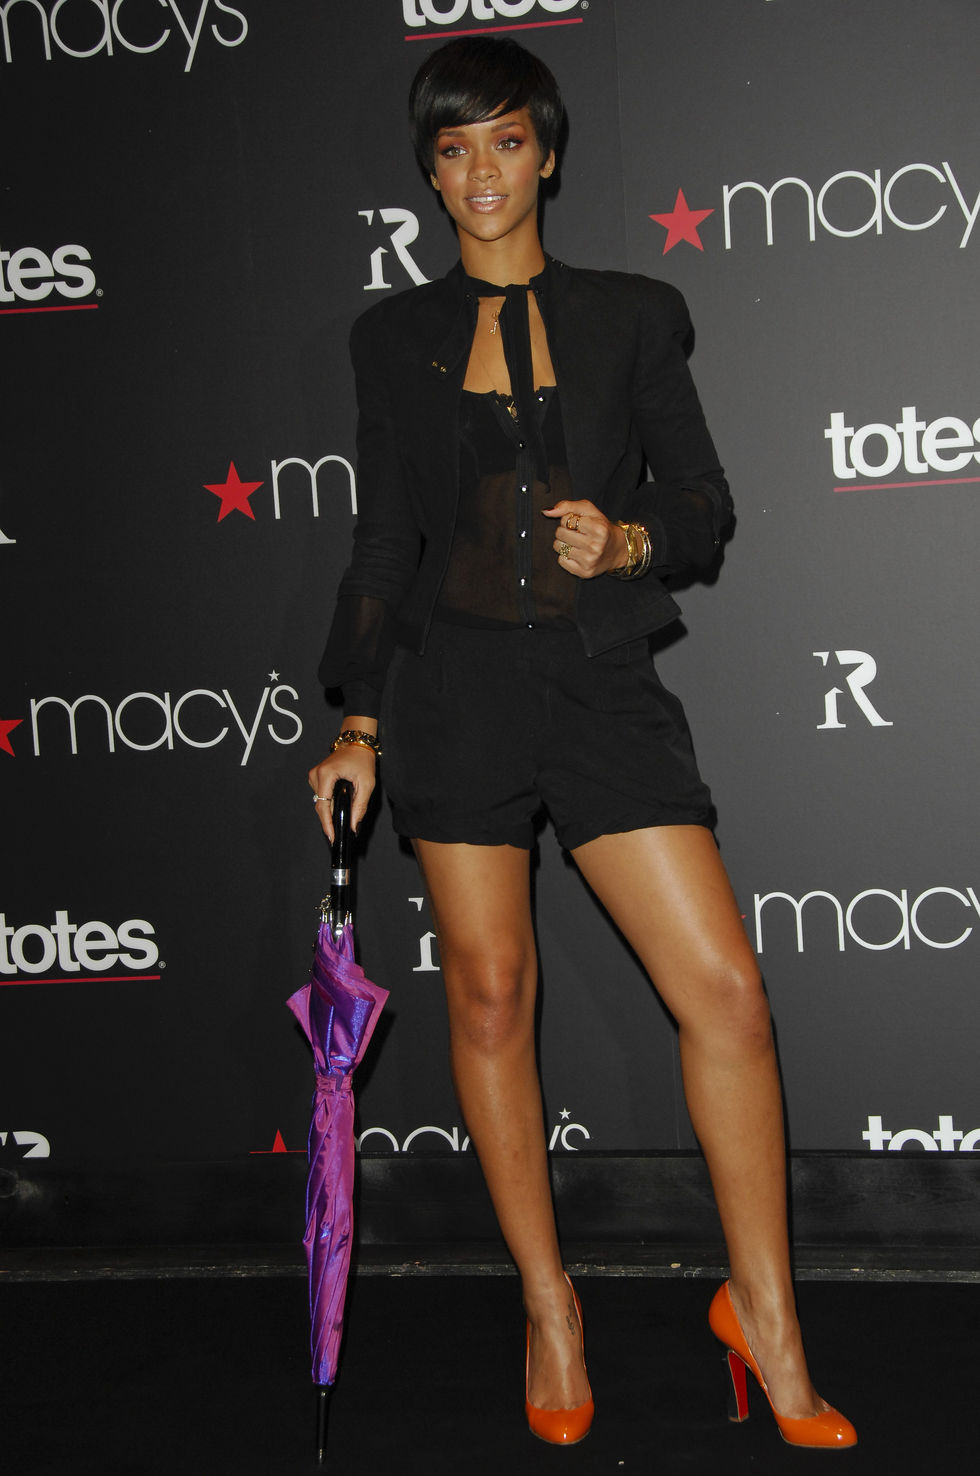 rihanna-celebrates-the-launch-of-rihanna-collection-of-umbrellas-01